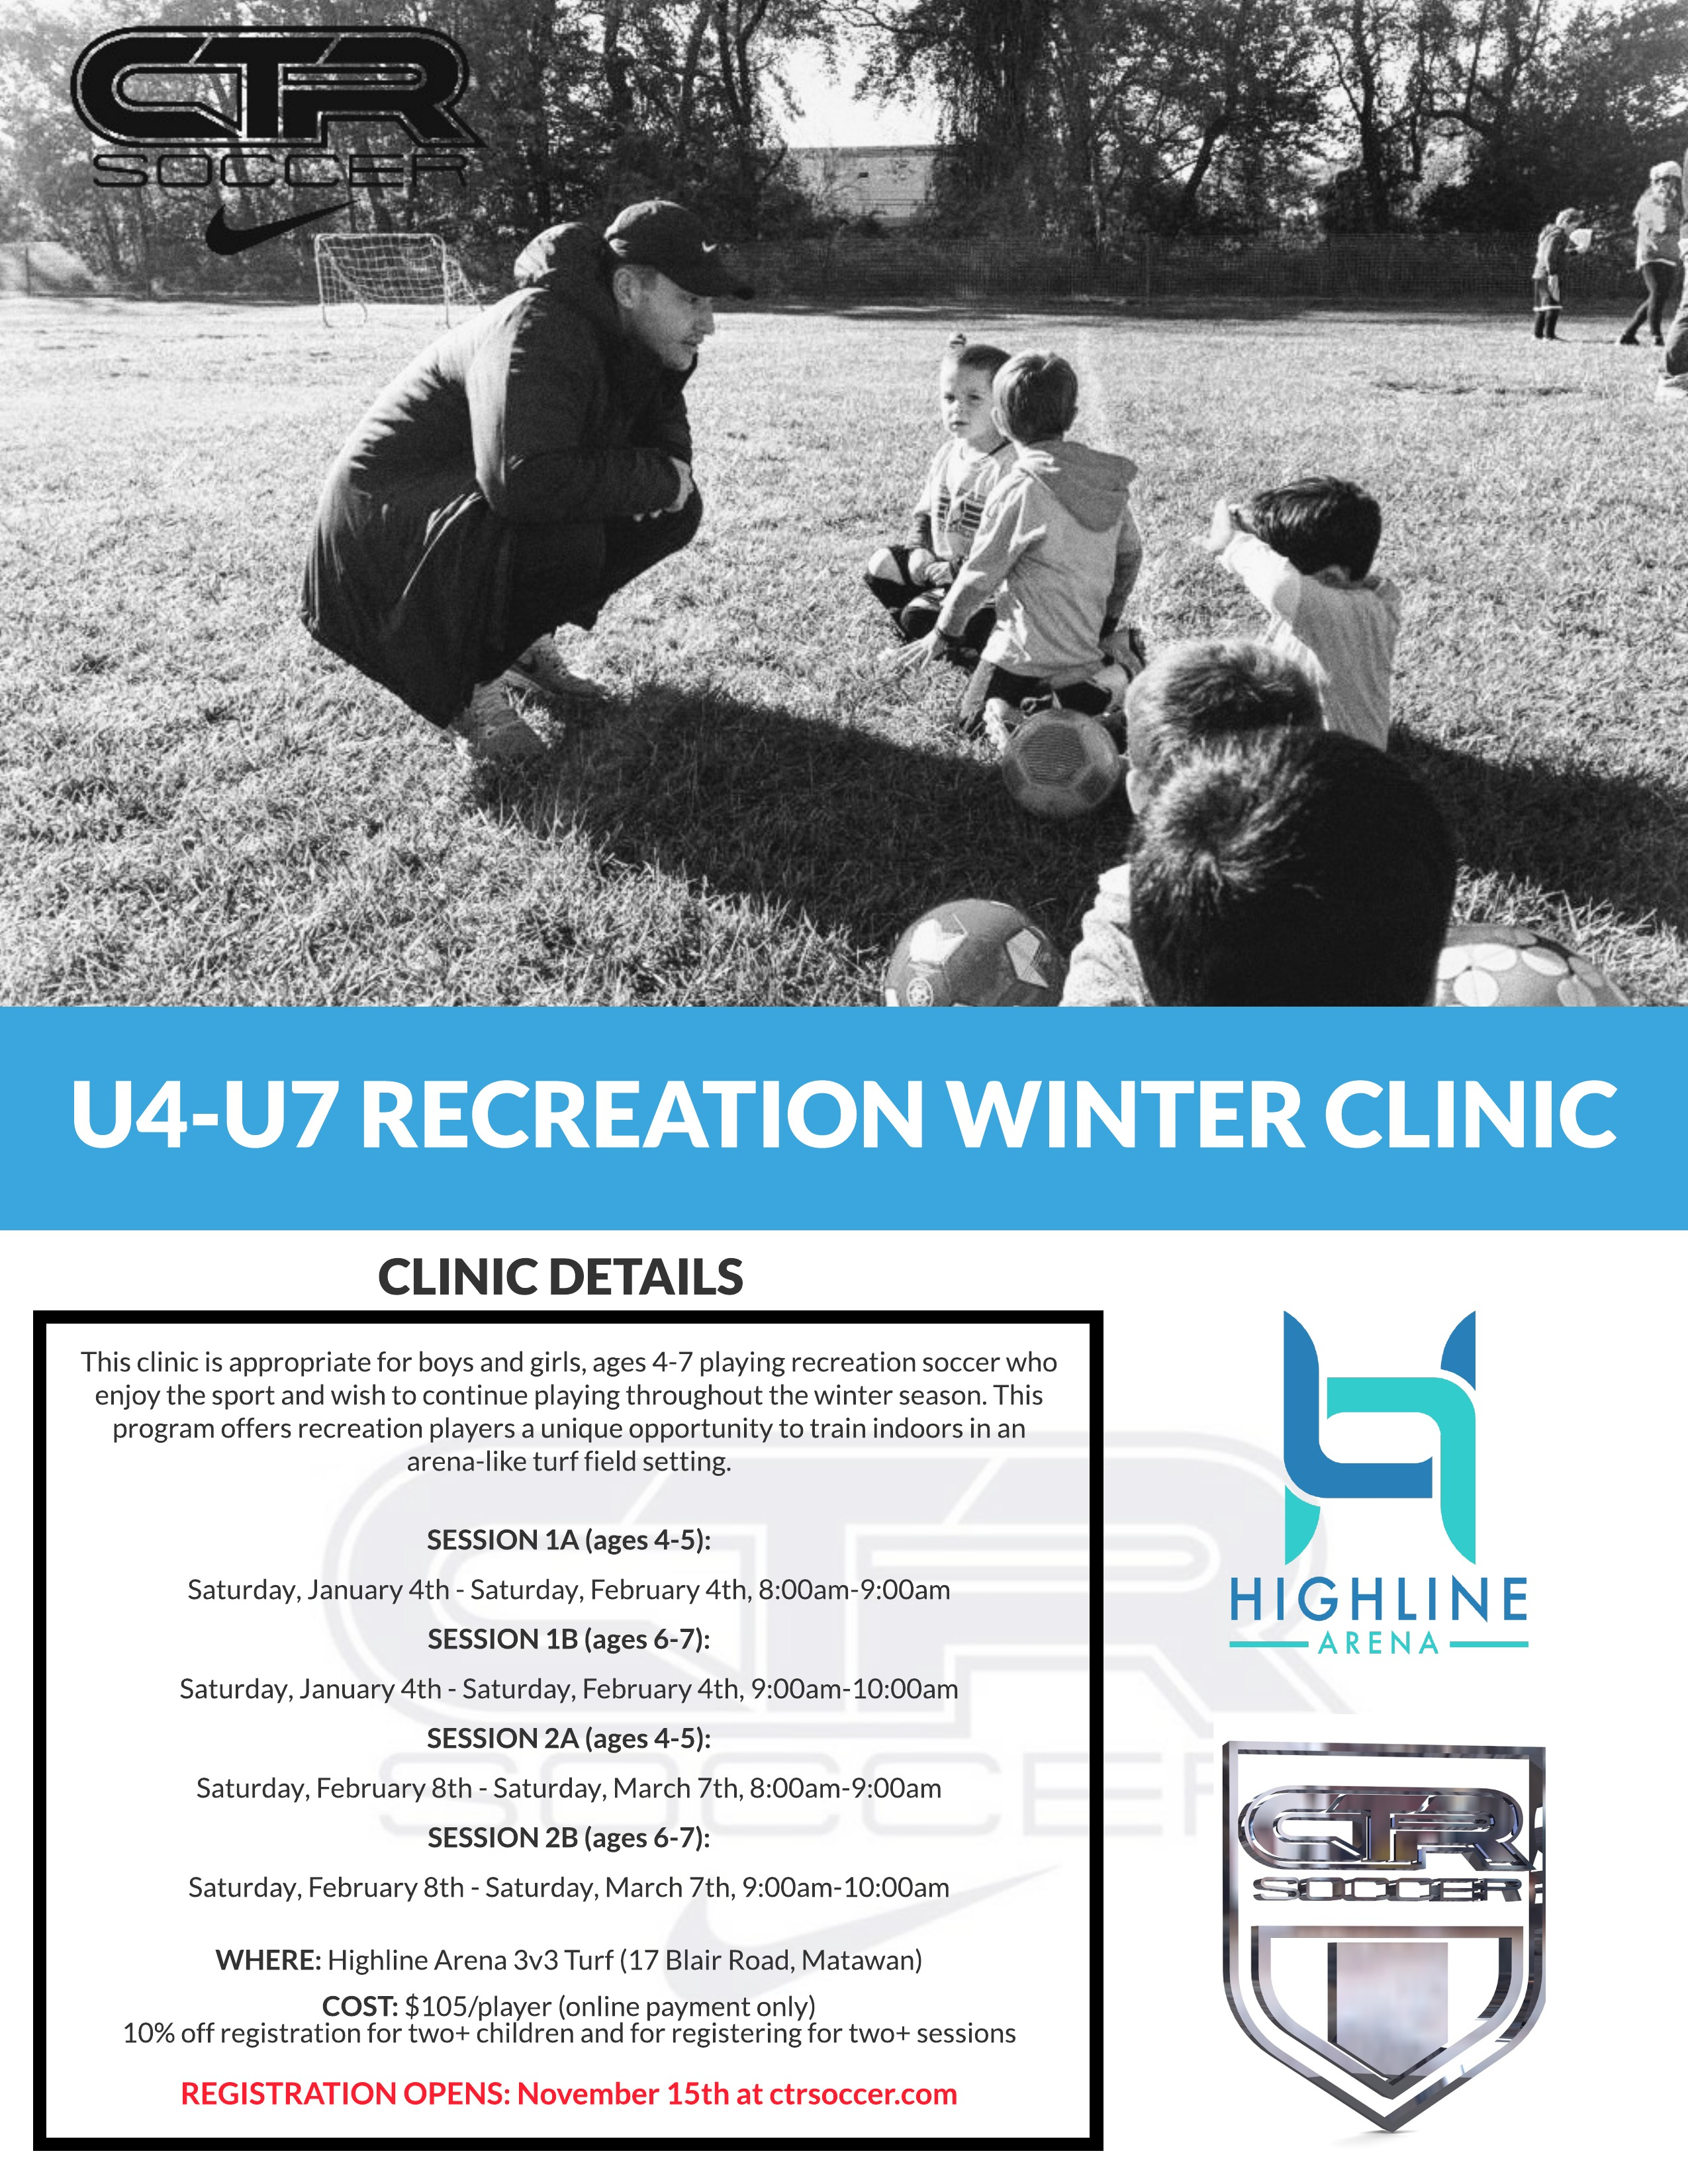 U4-U7 Recreation Winter Clinic